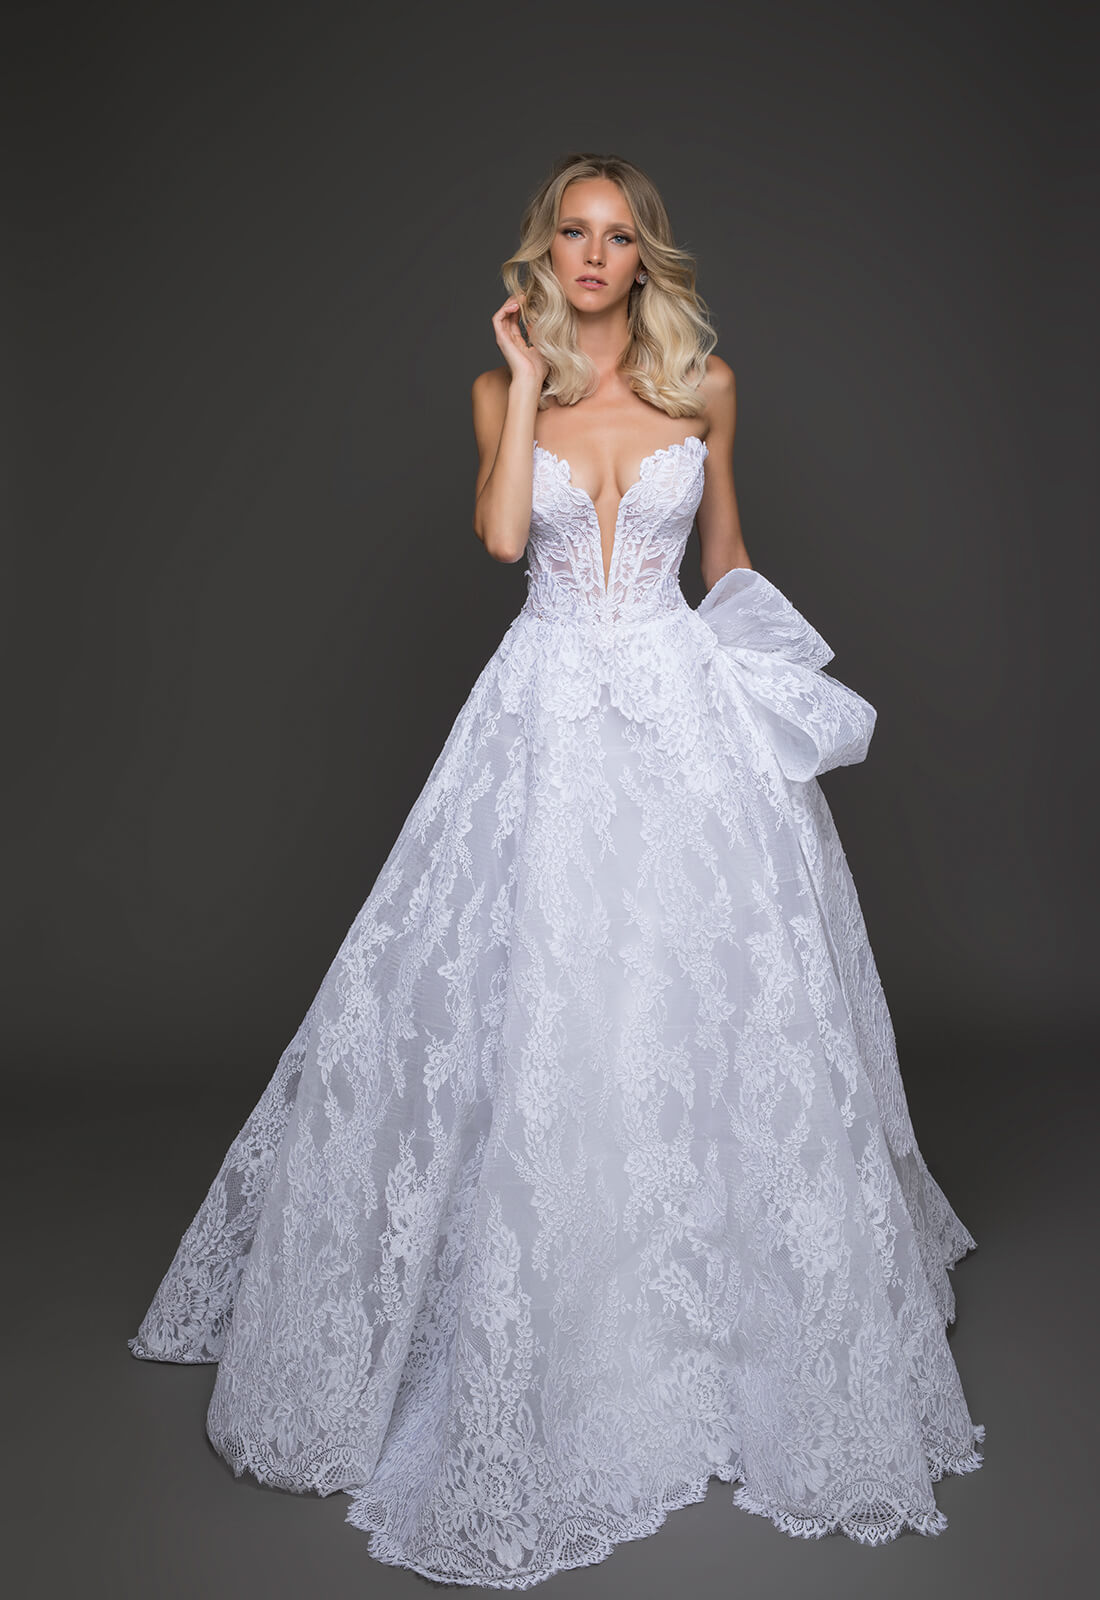 Romantic ball gown wedding dress kleinfeld bridal romantic ball gown wedding dress by pnina tornai image 1 zoomed in junglespirit Choice Image